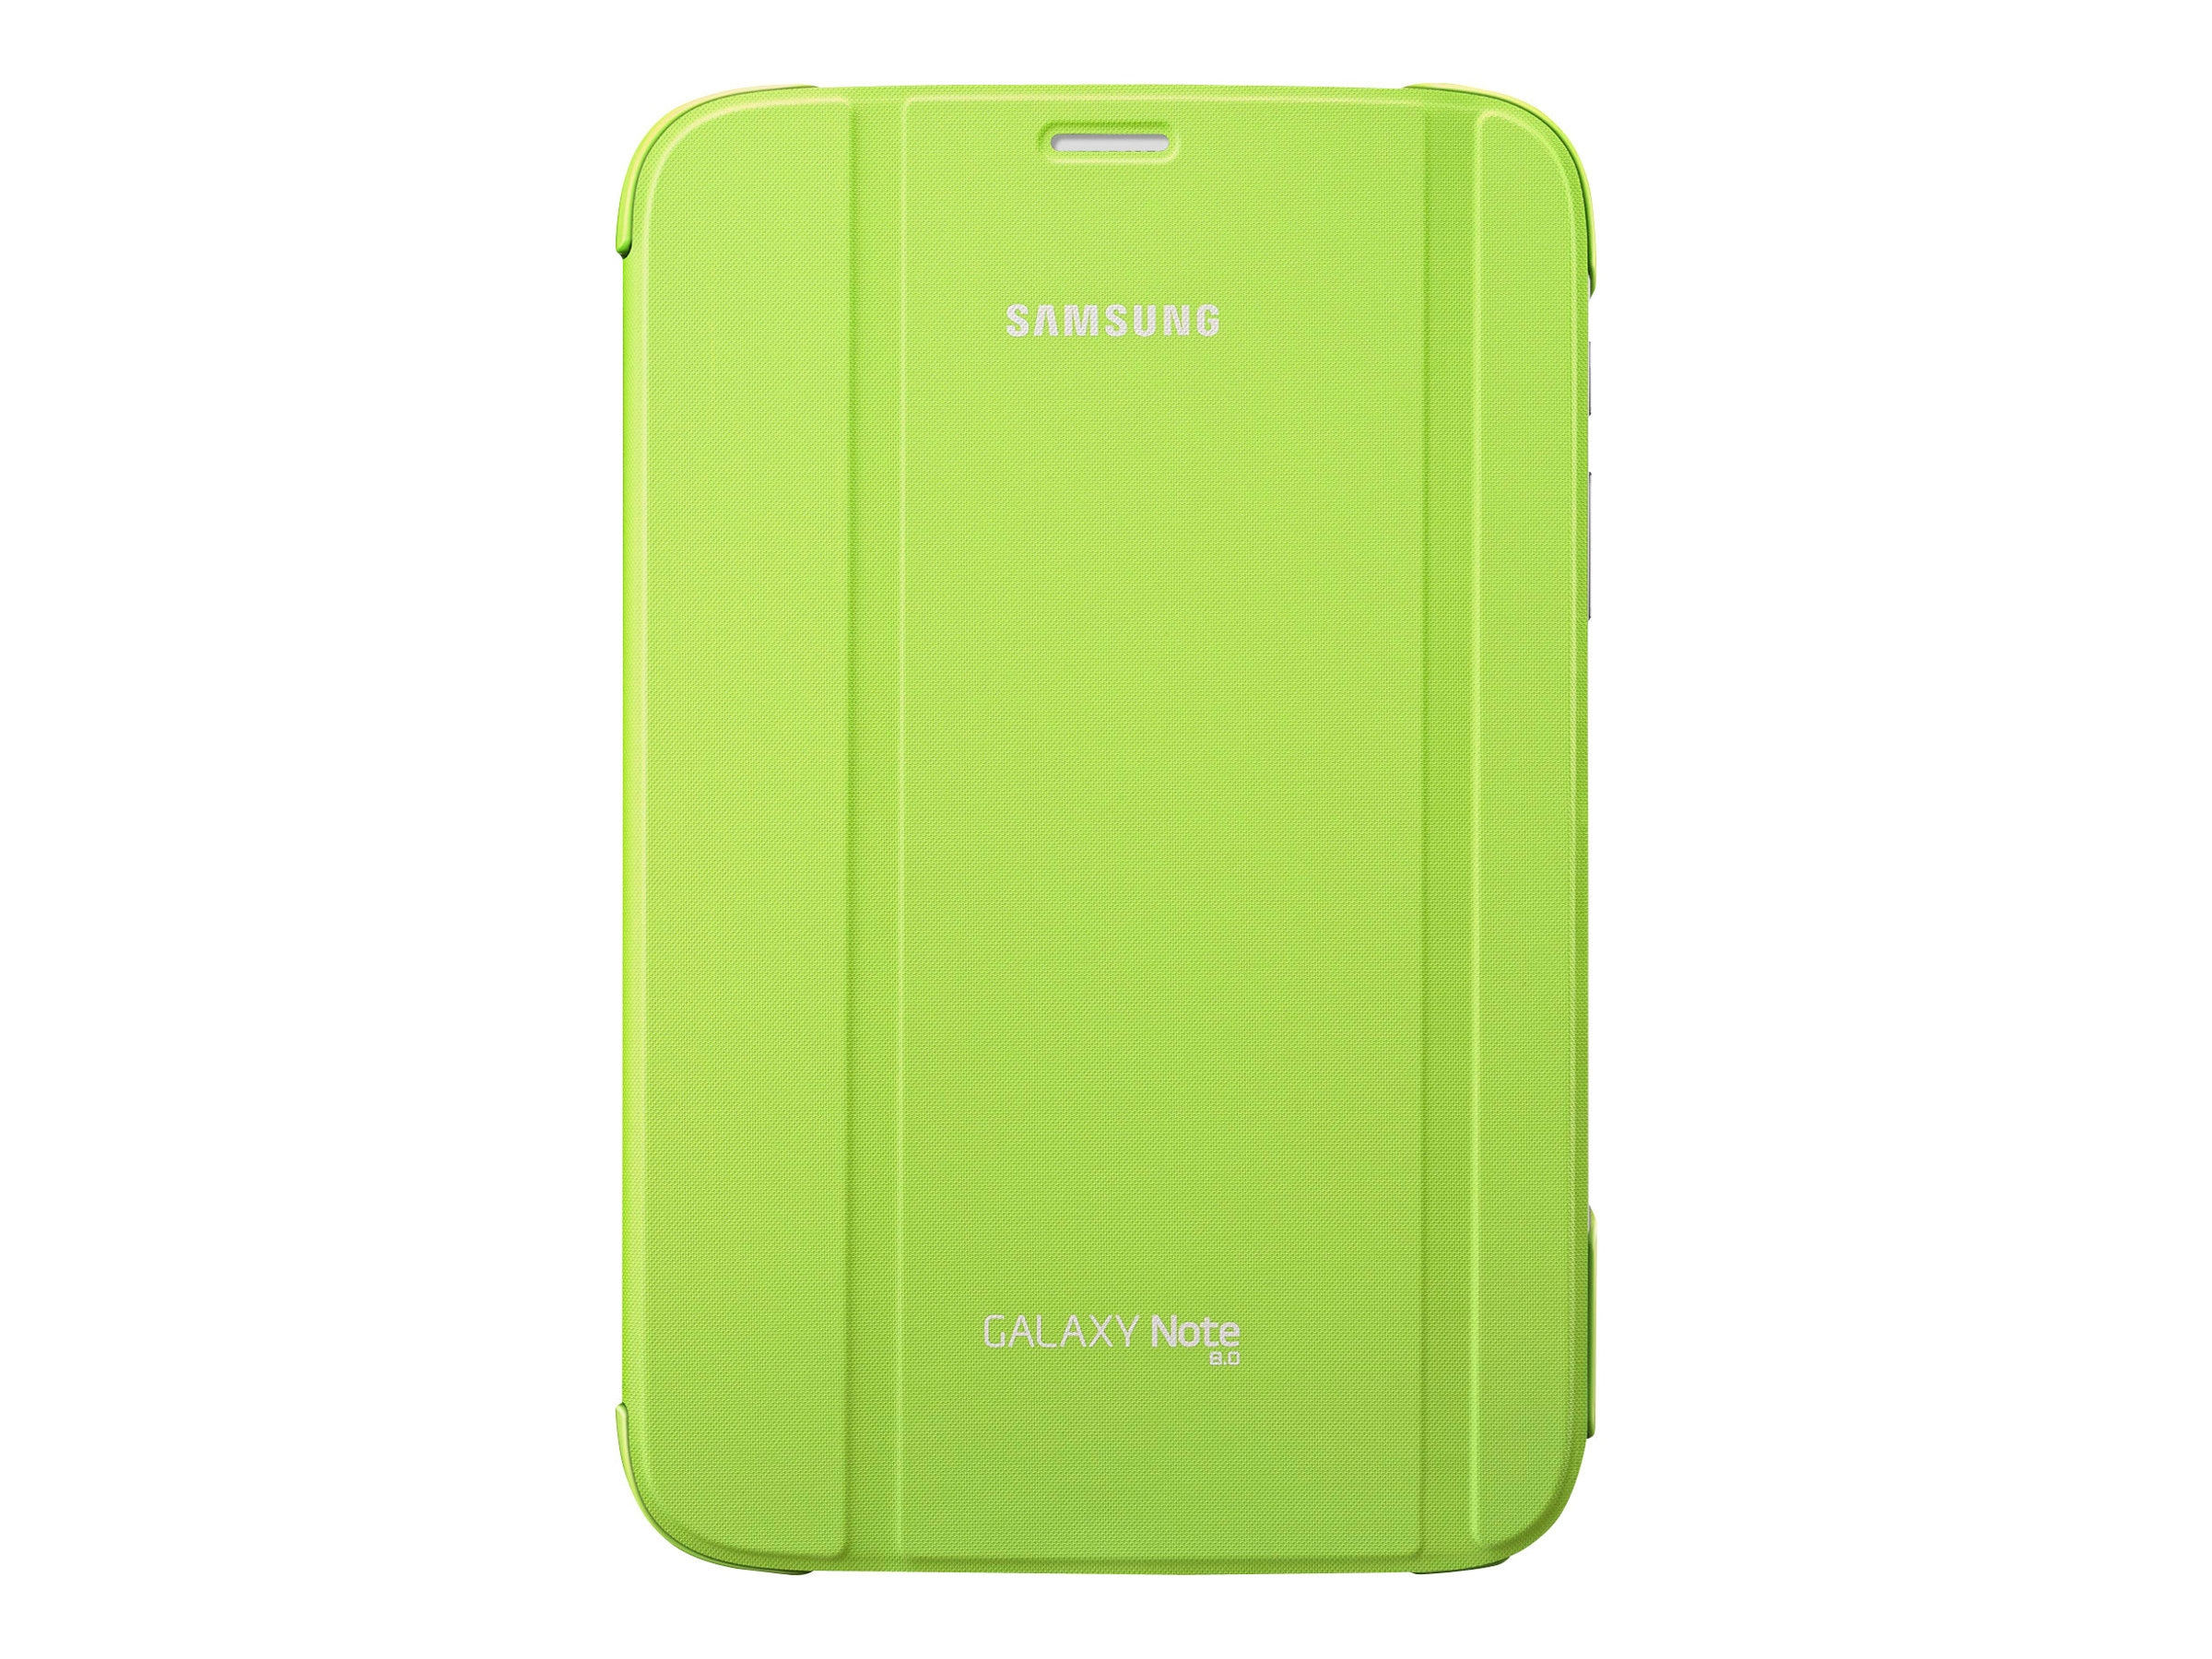 Samsung Book Cover for Galaxy Note 8.0, Green, EF-BN510BGEGUJ, 15497179, Carrying Cases - Tablets & eReaders